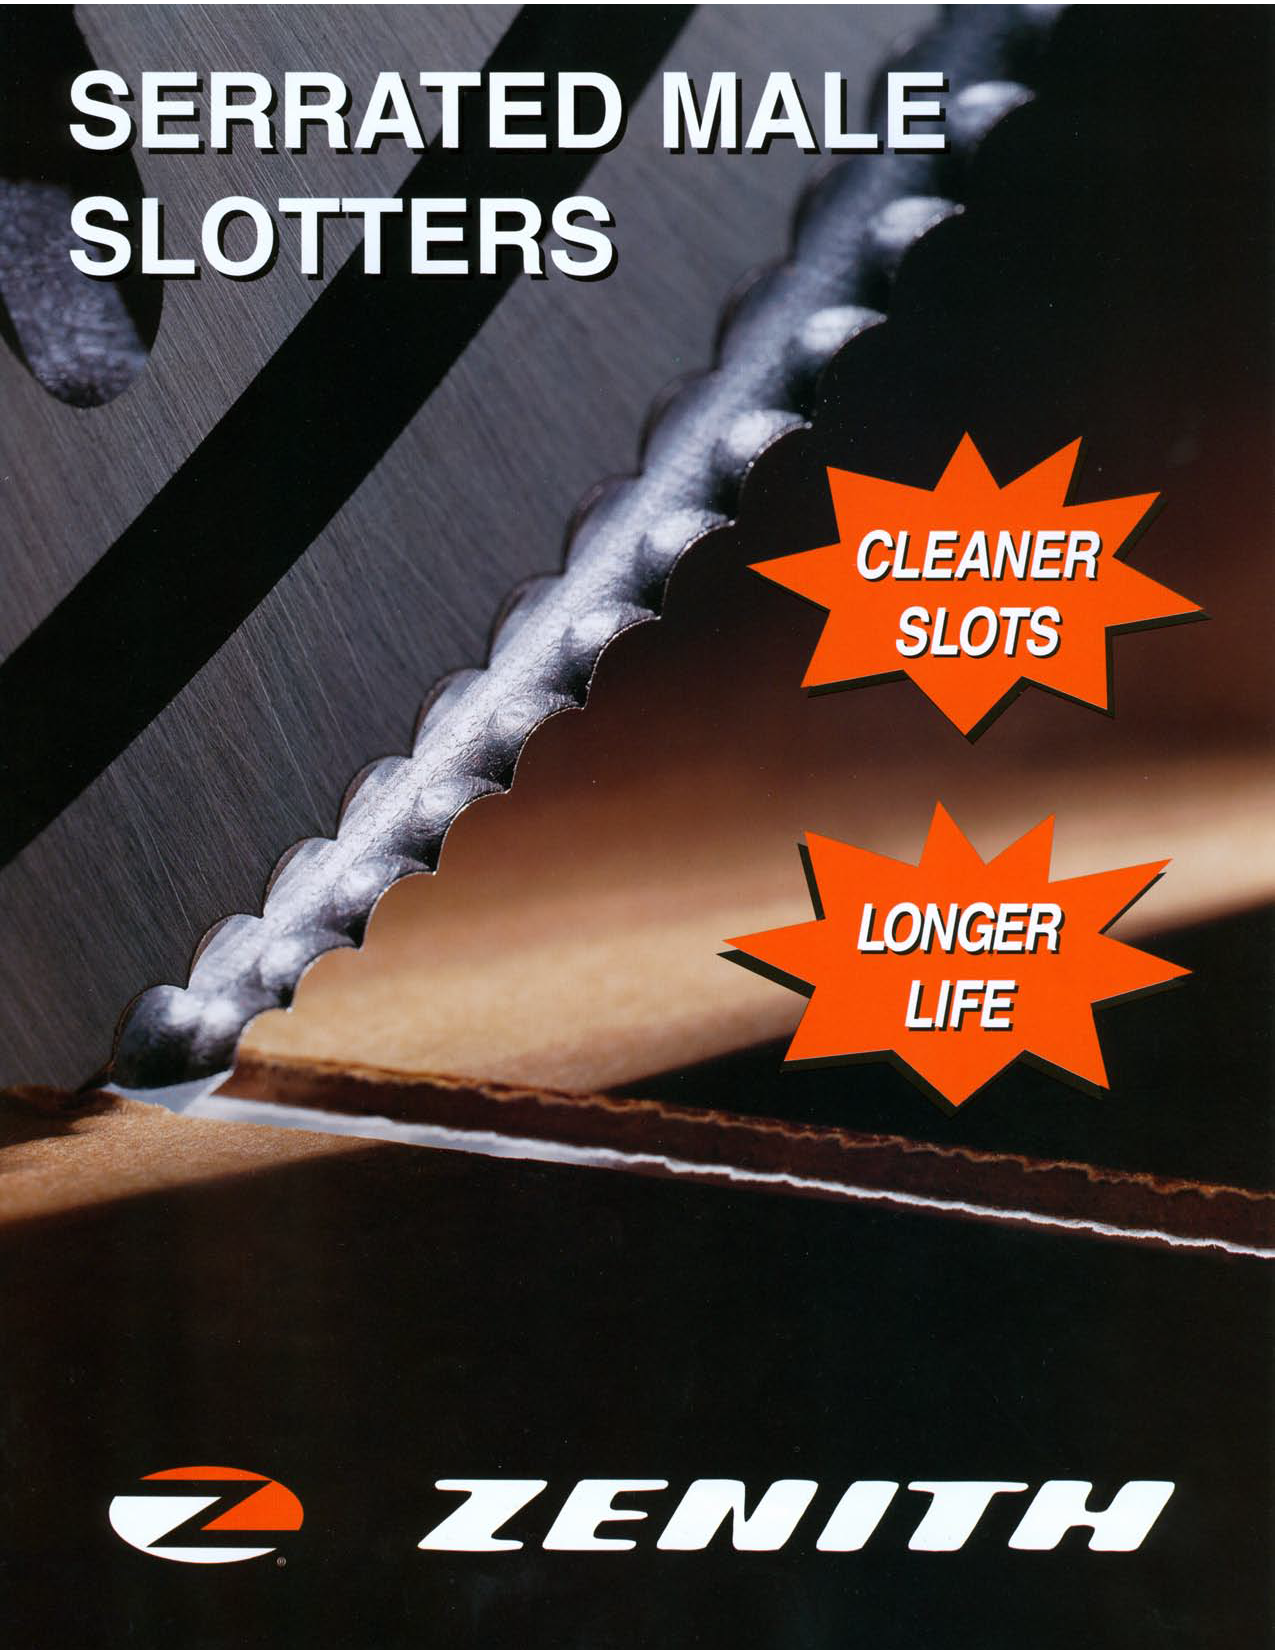 Learn more about the Serrated Male Slotters in the Zenith brochure